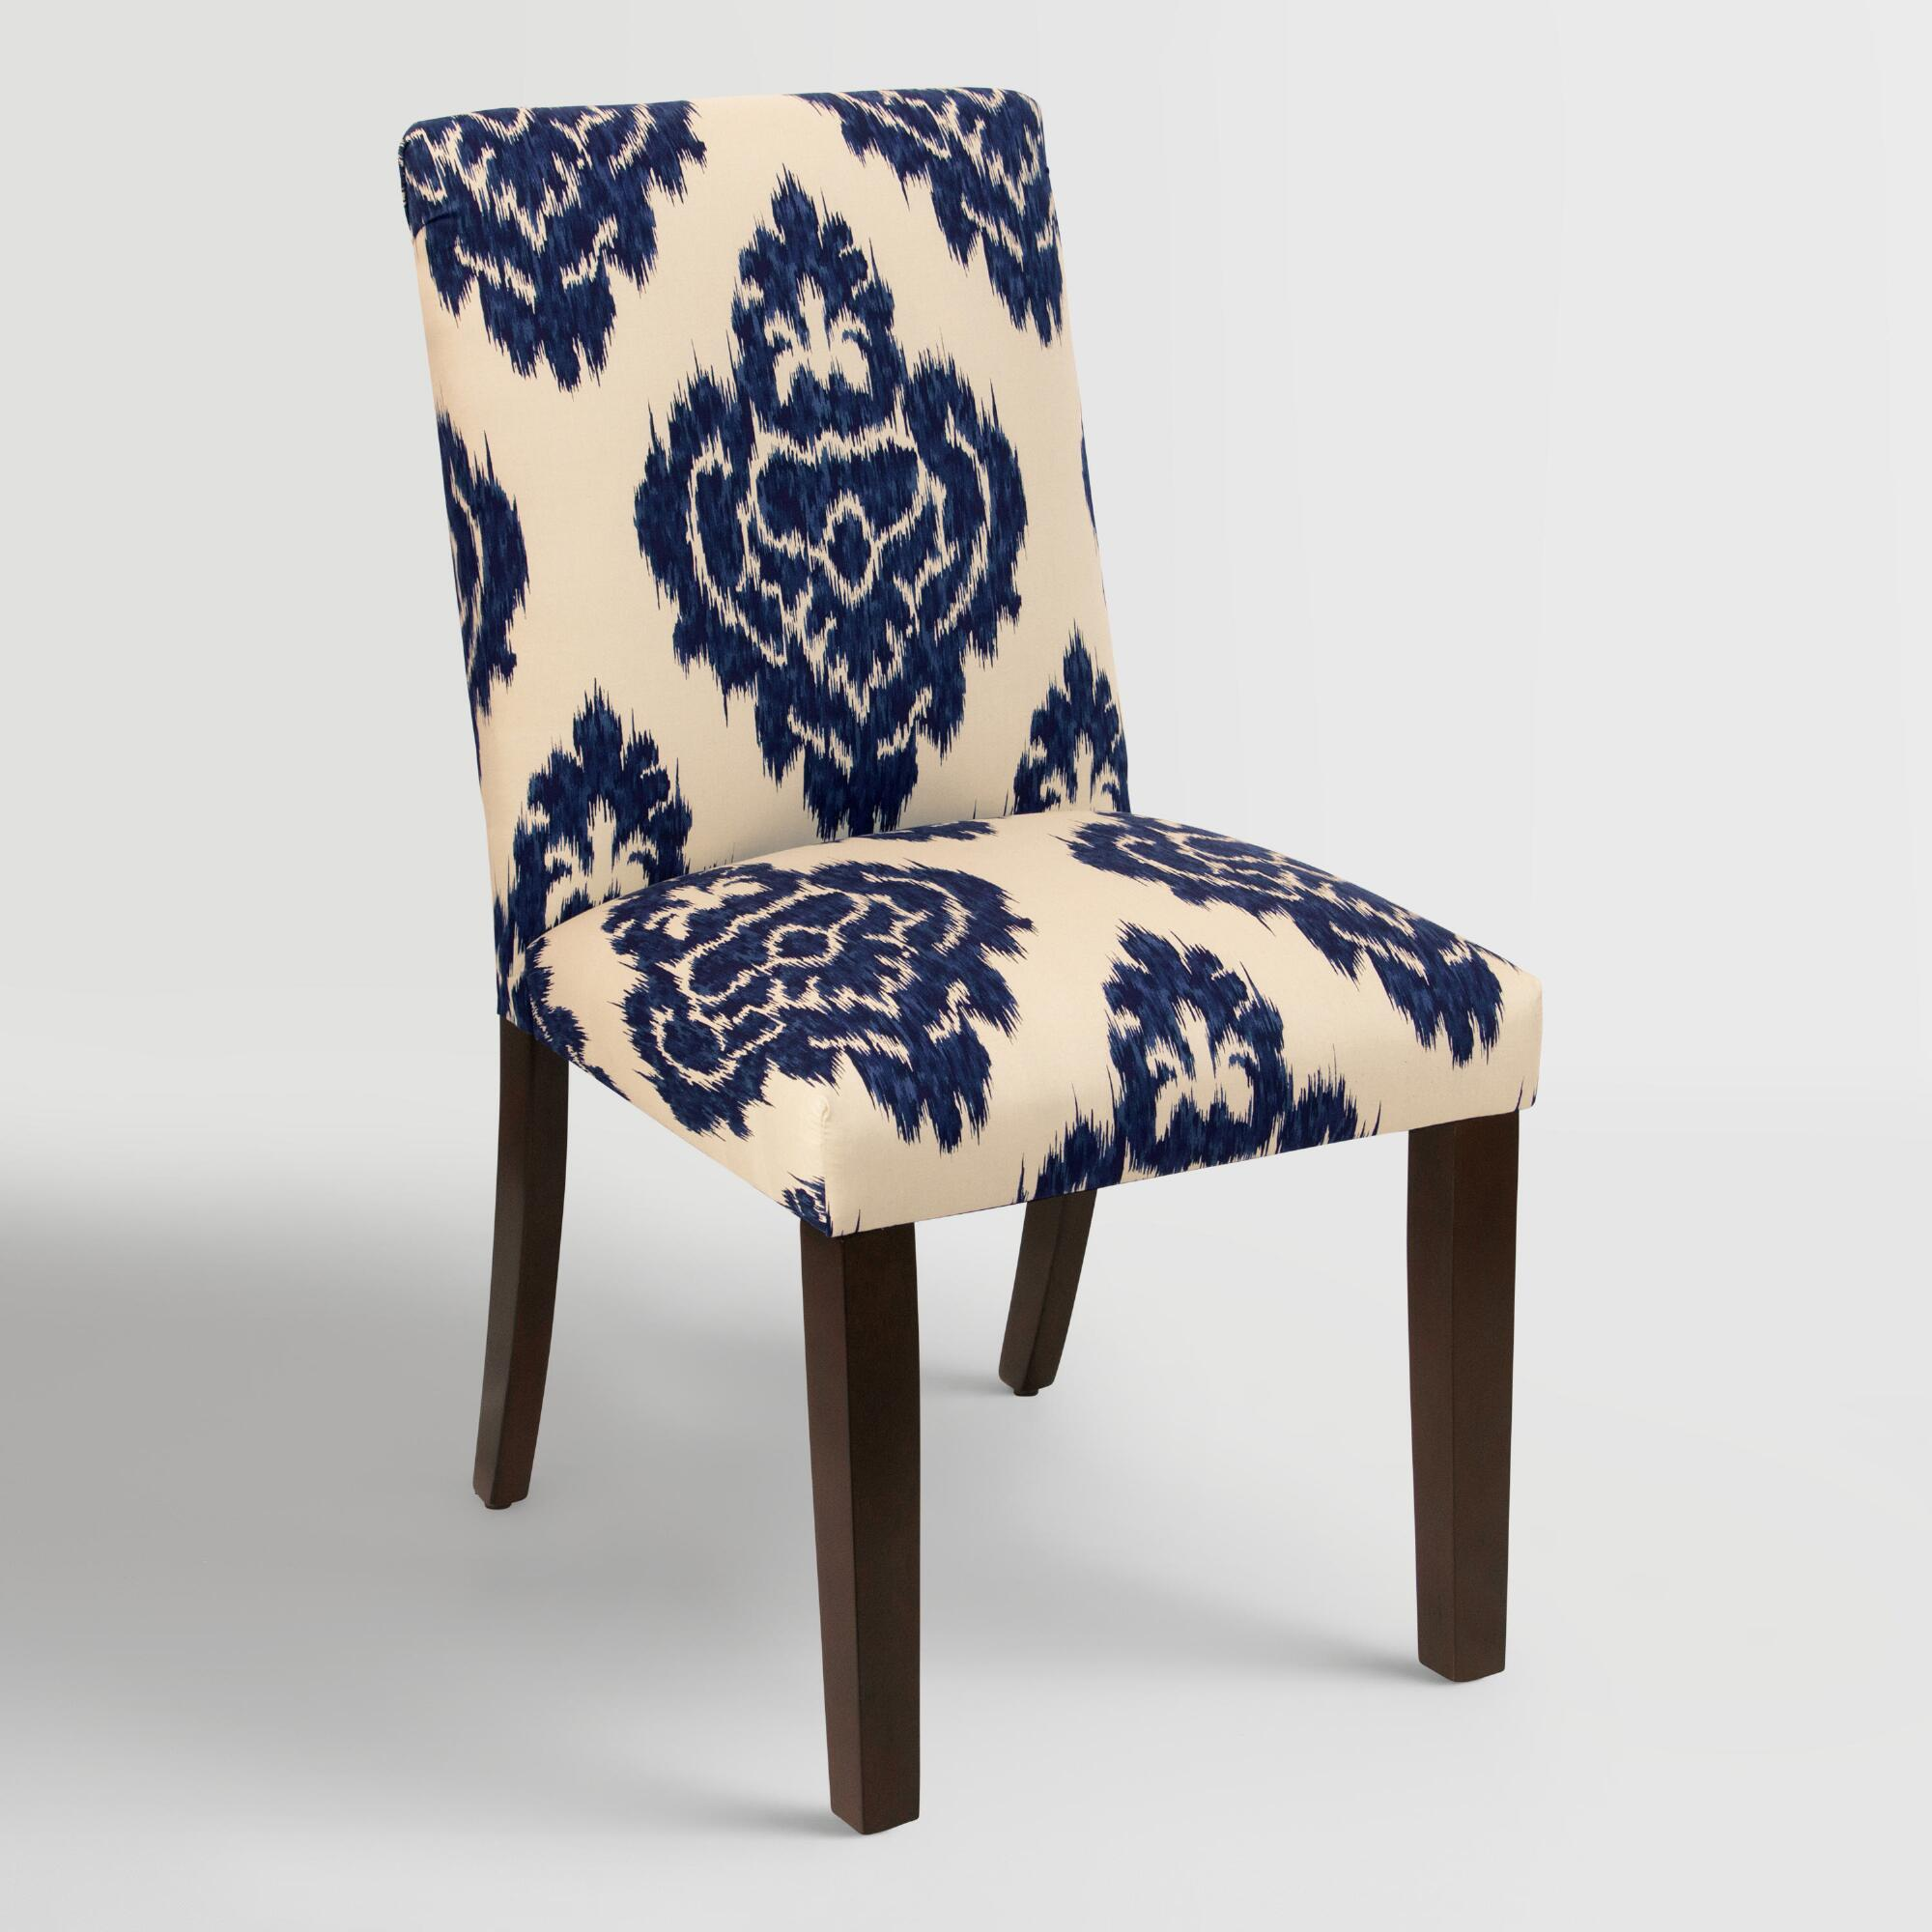 Upholstered Dining Room Chair: Blue Diamond Kerri Upholstered Dining Chair